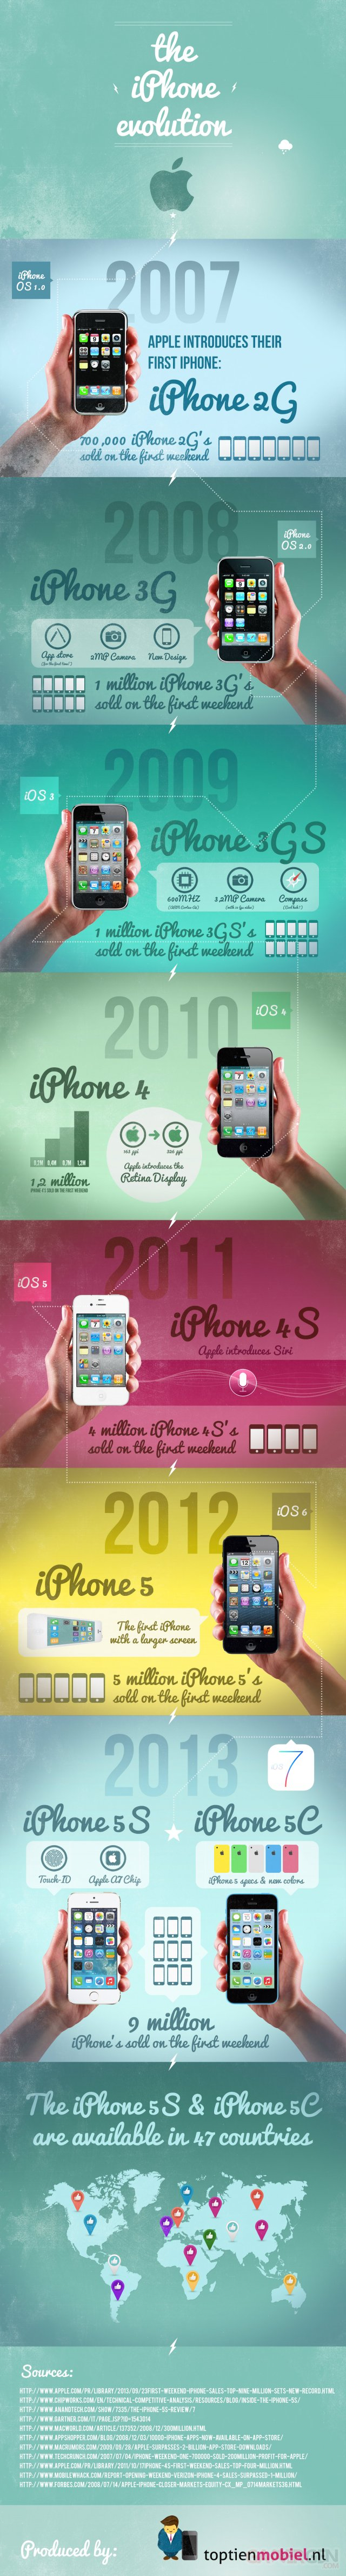 evolution-of-the-iphone